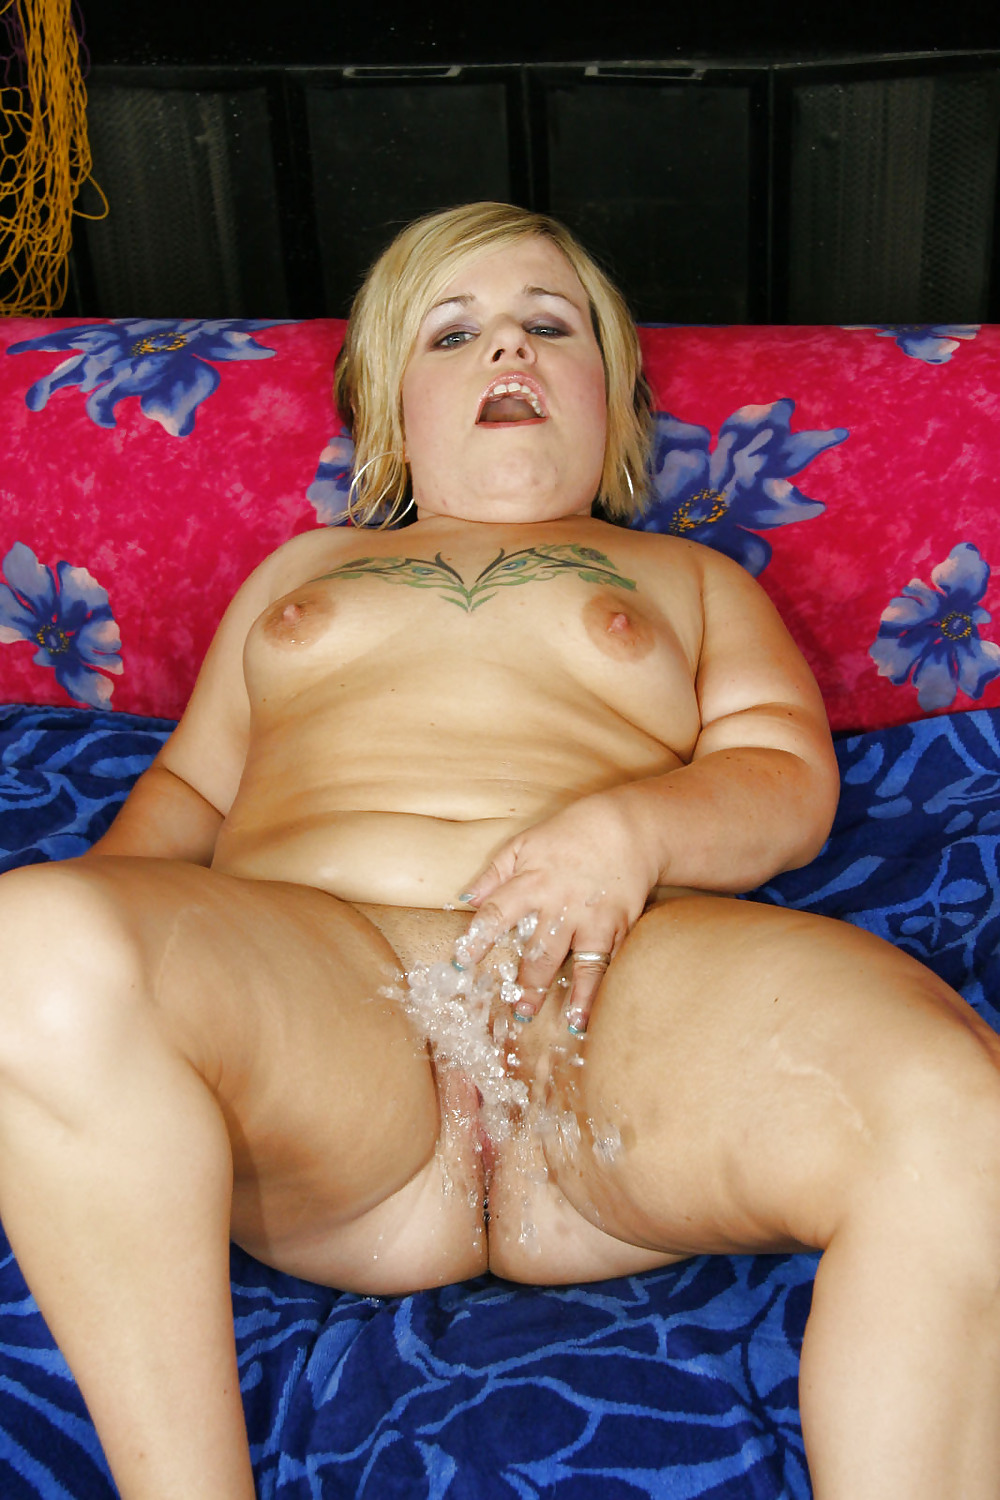 Dwarf daughter gets her pussy fucked by her parents